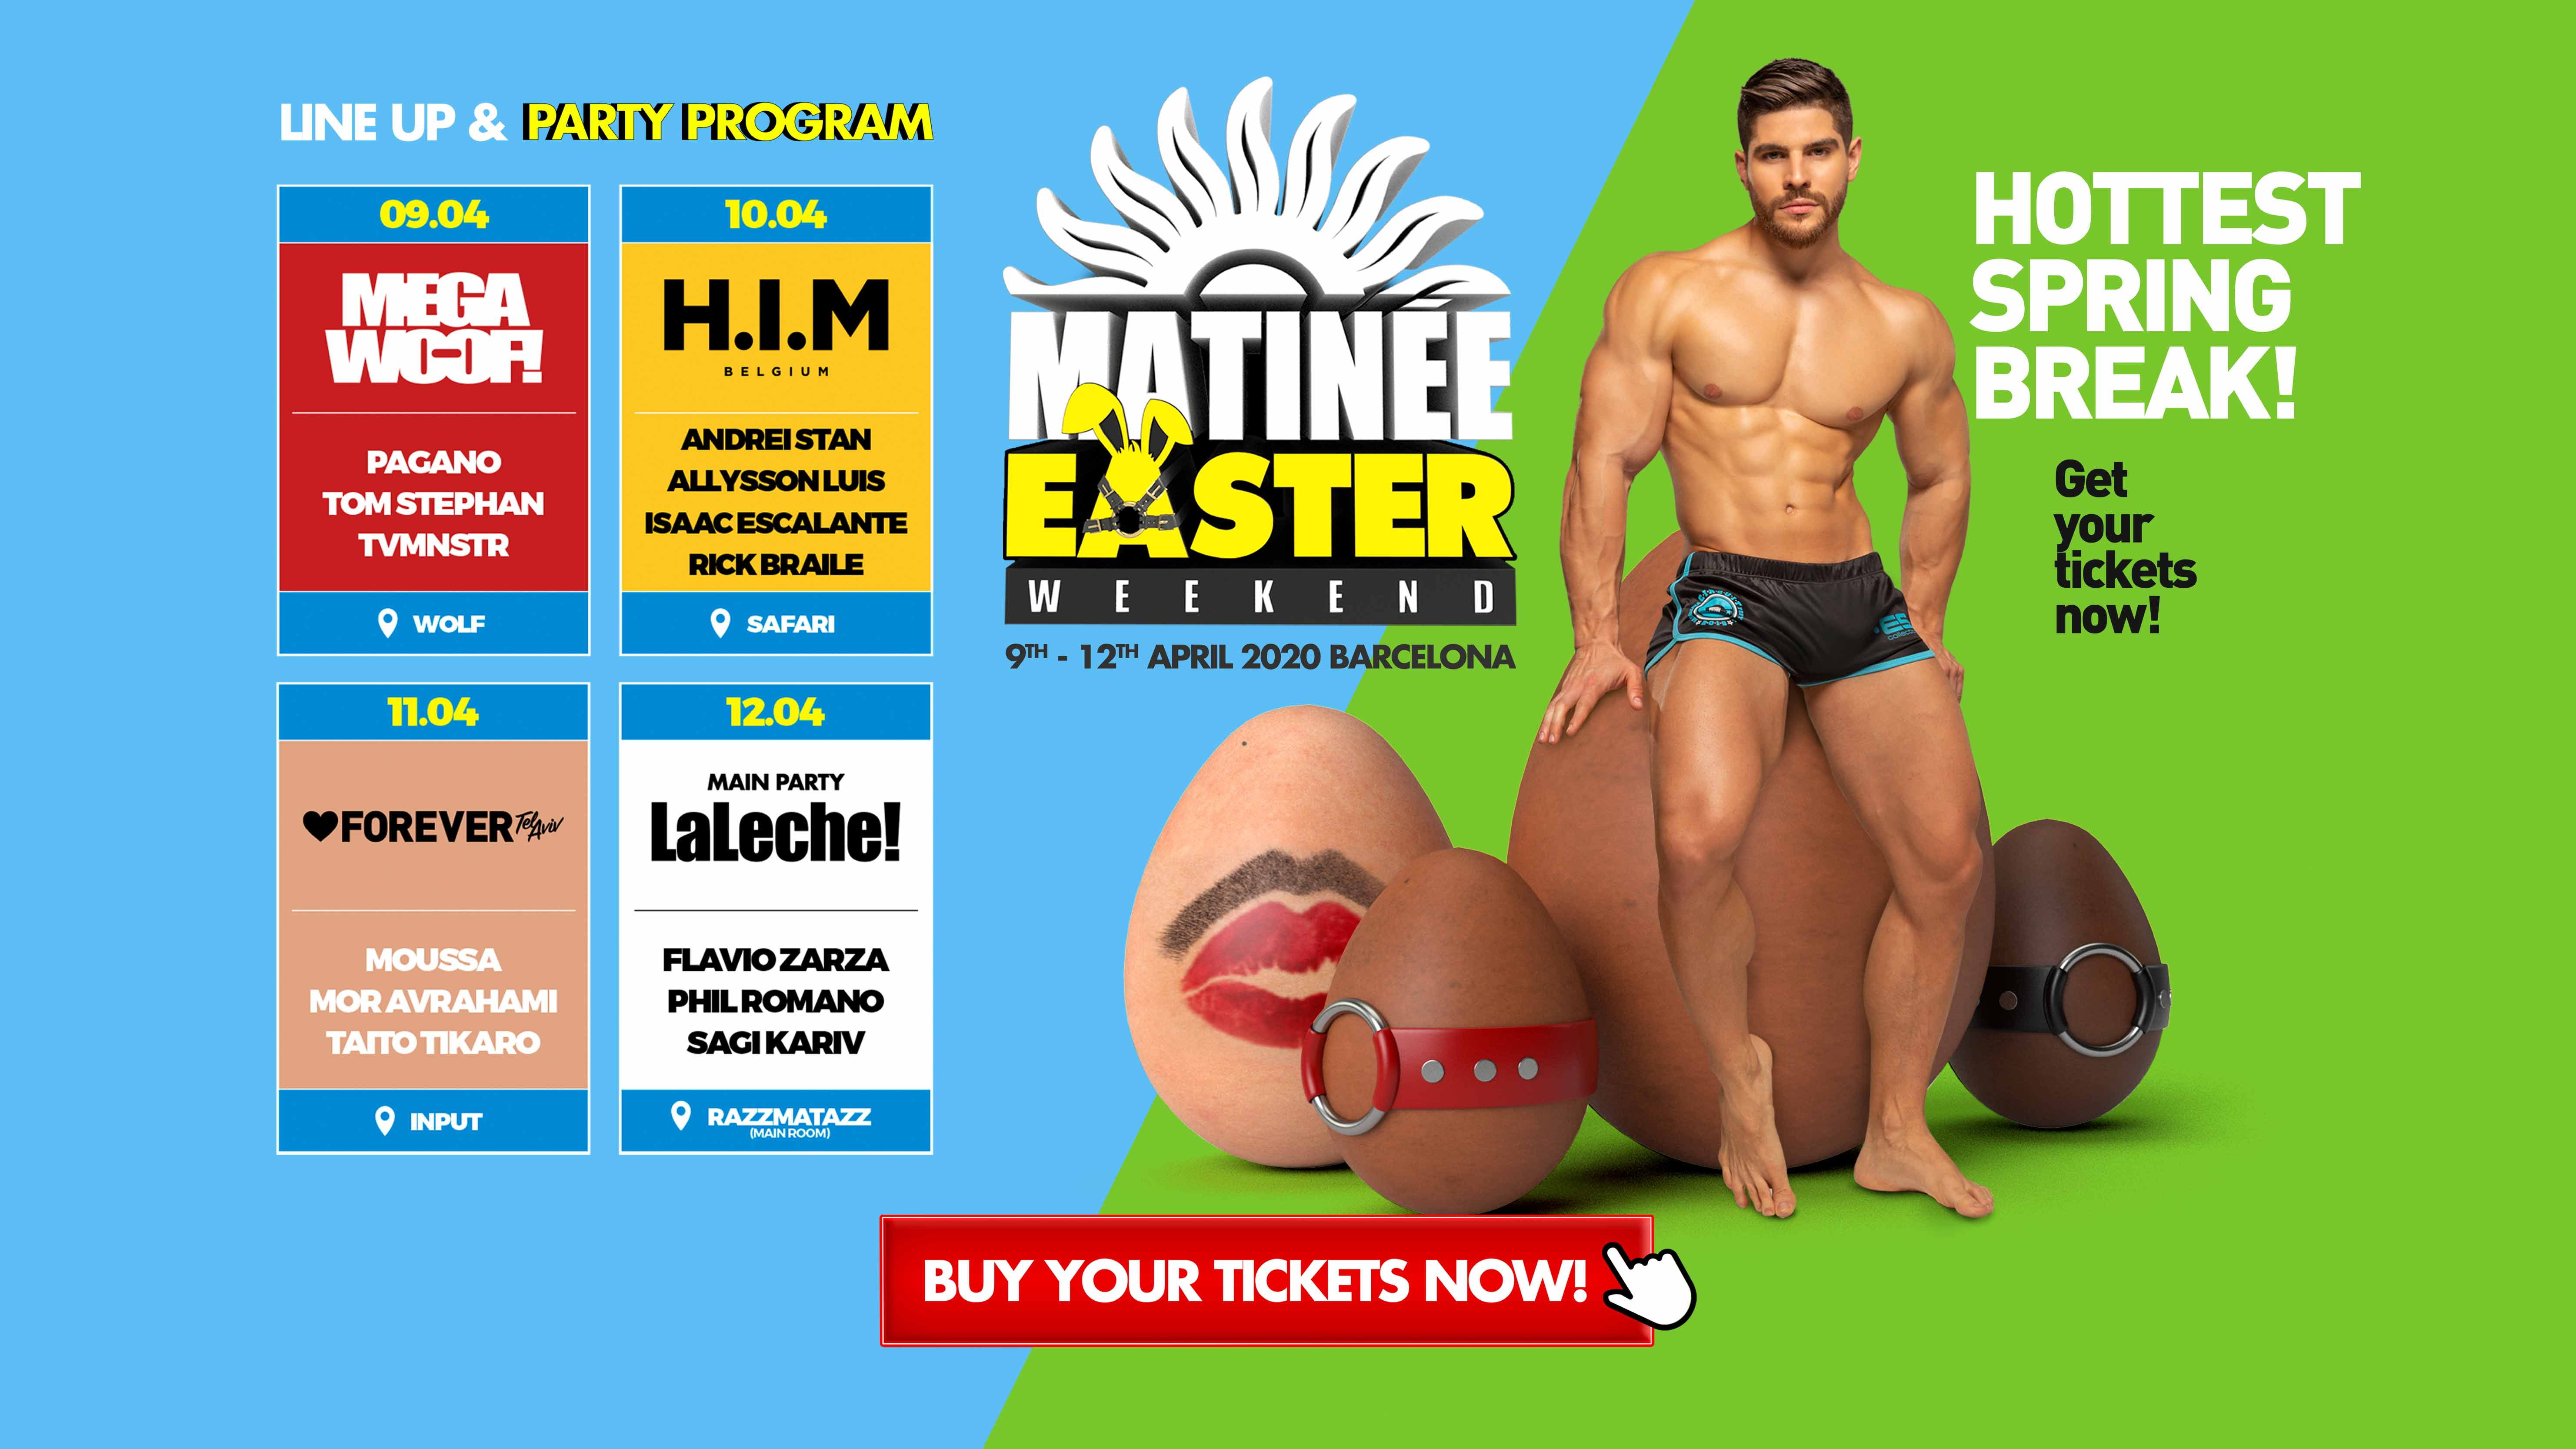 easter_easterfestival_eastergayfestival_eastergay_easterbarcelona_barcelona_gay_event_gaybarcelona_english_web_gayparty